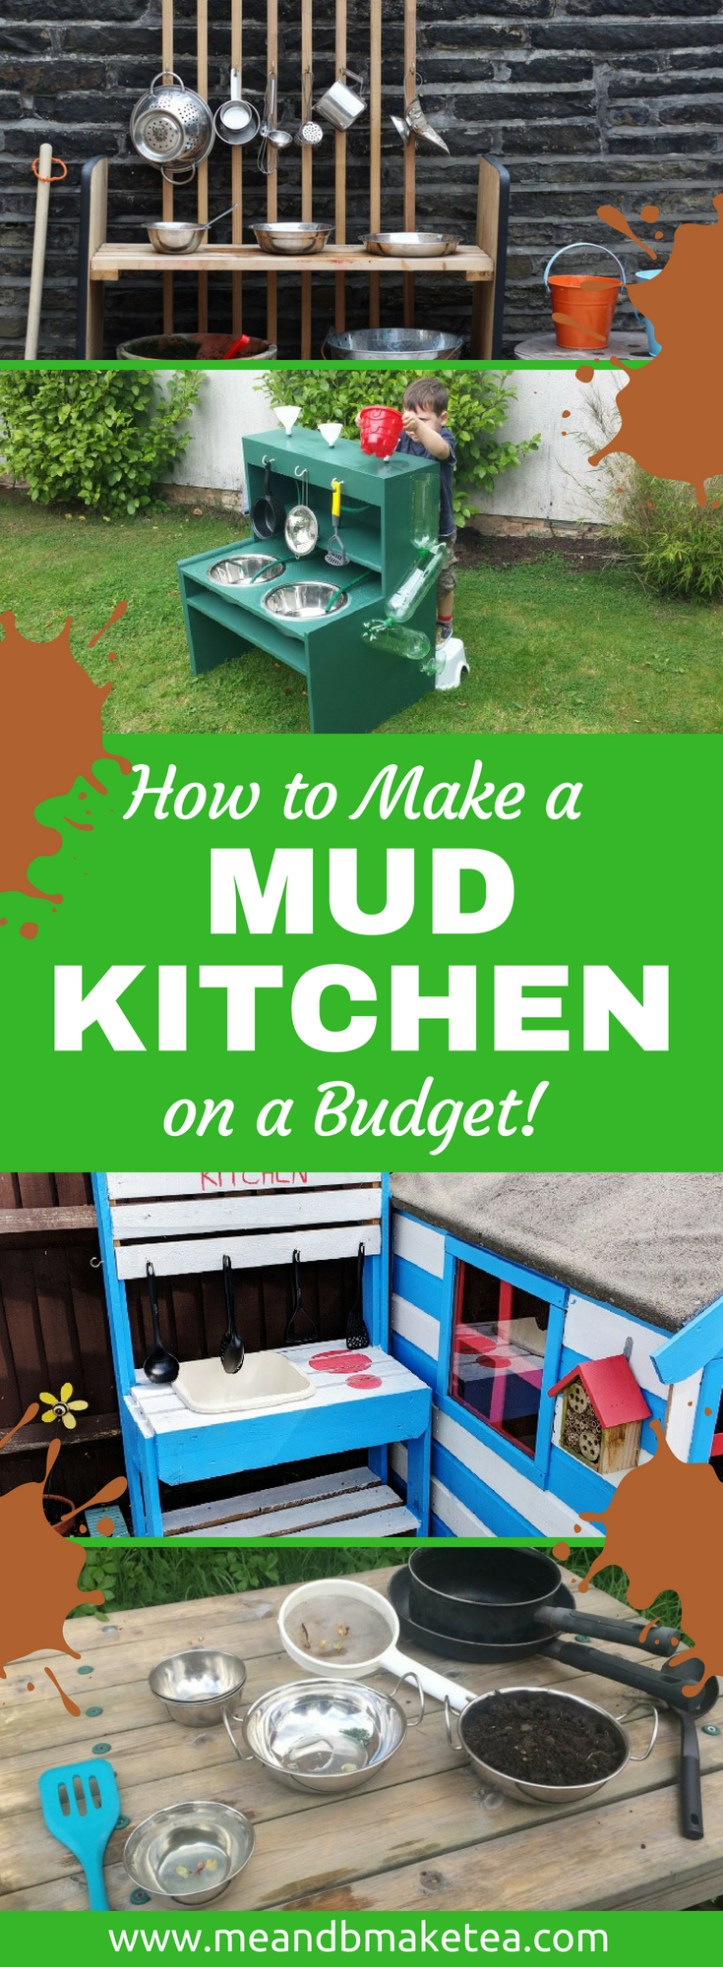 how to make a mud kitchen for summer outdoor play for kids on a budget | cheap ideas low cost for sensory play